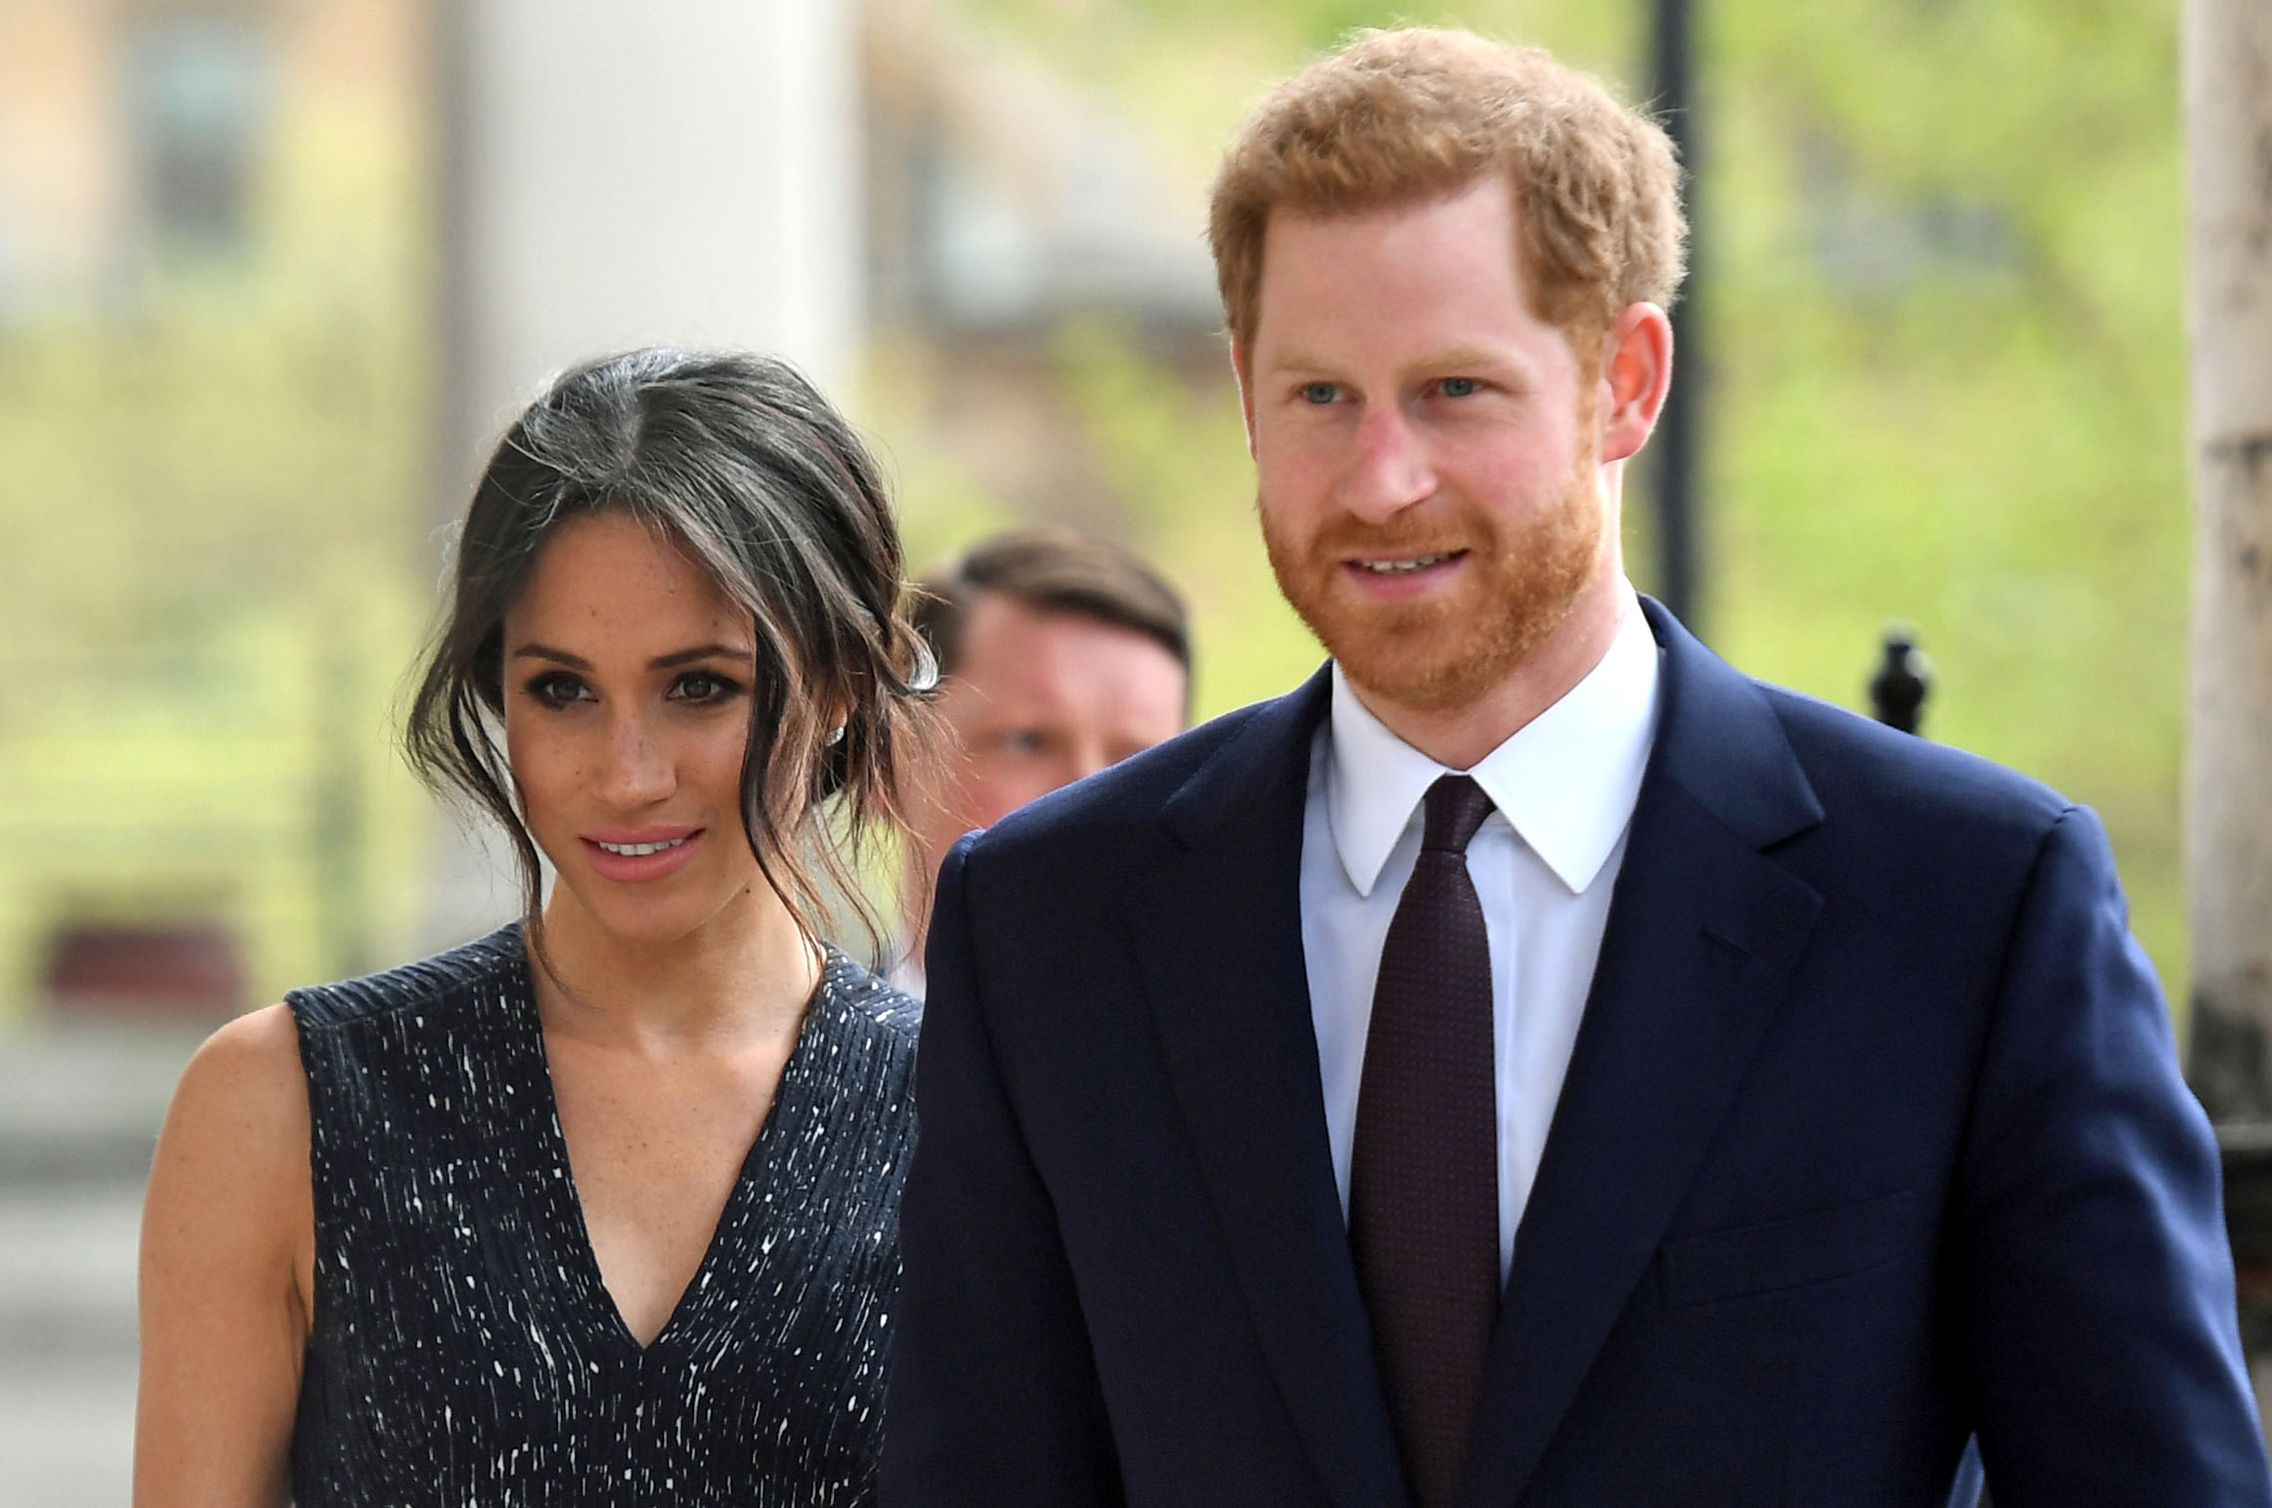 Royal Fans Are So Mad About Meghan Markle and Prince Harry's Birthday Wish to Prince George